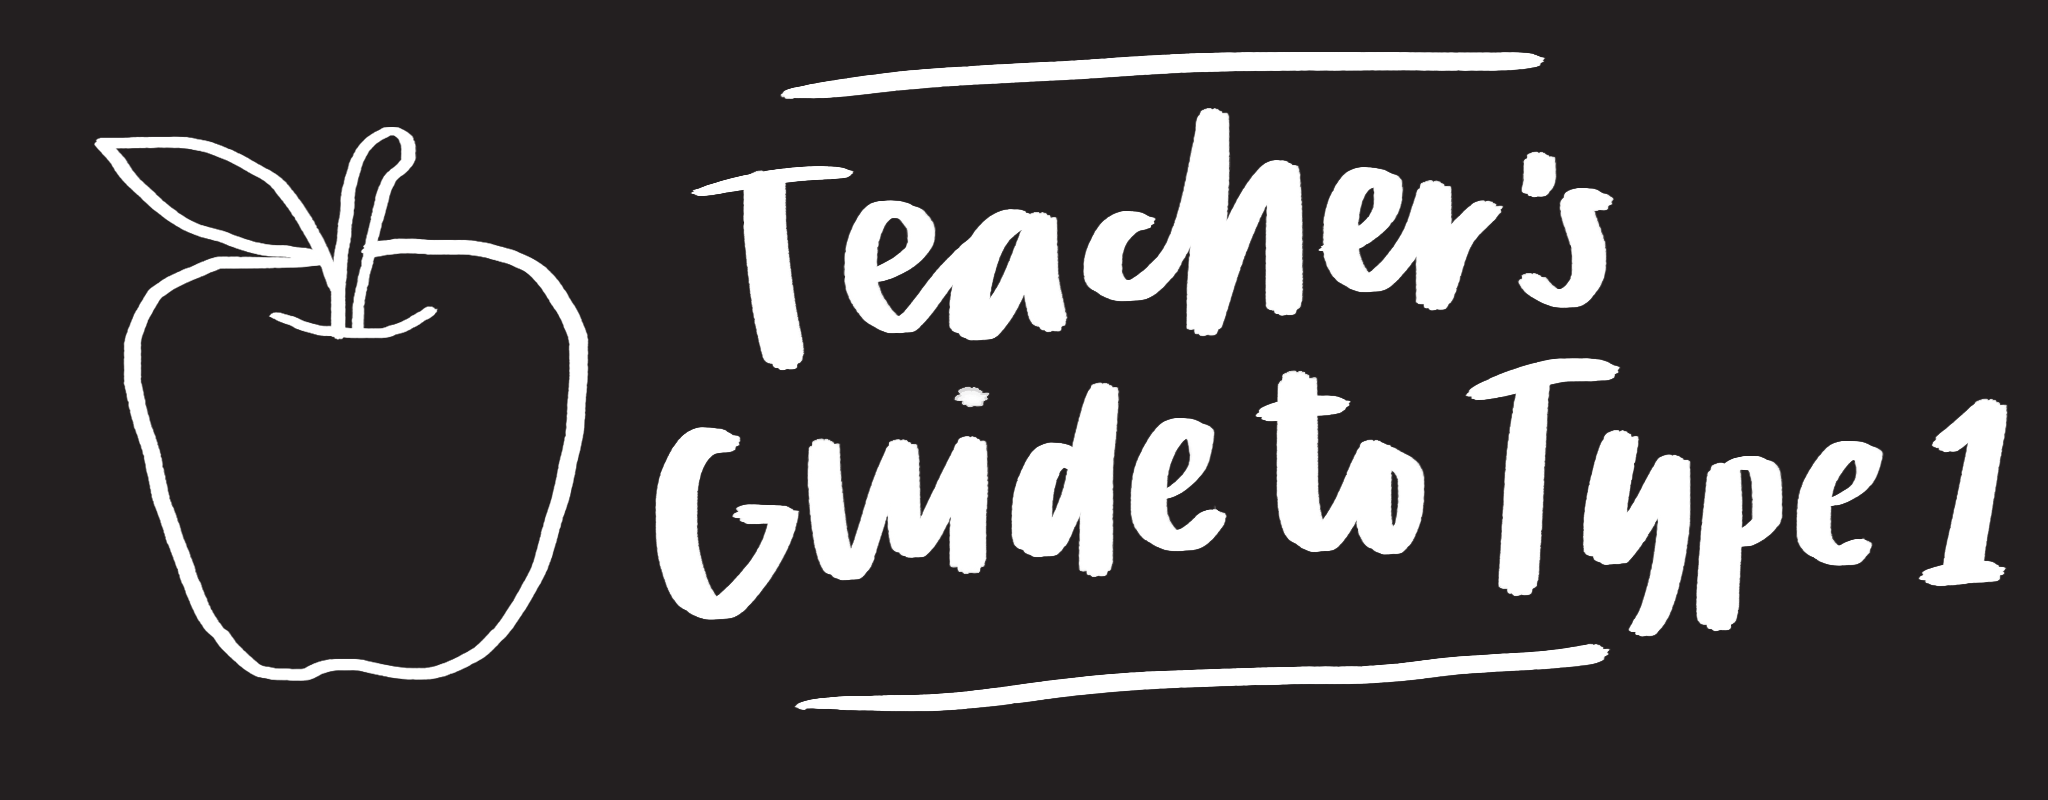 A Teacher S Guide To Kids With Type 1 Diabetes